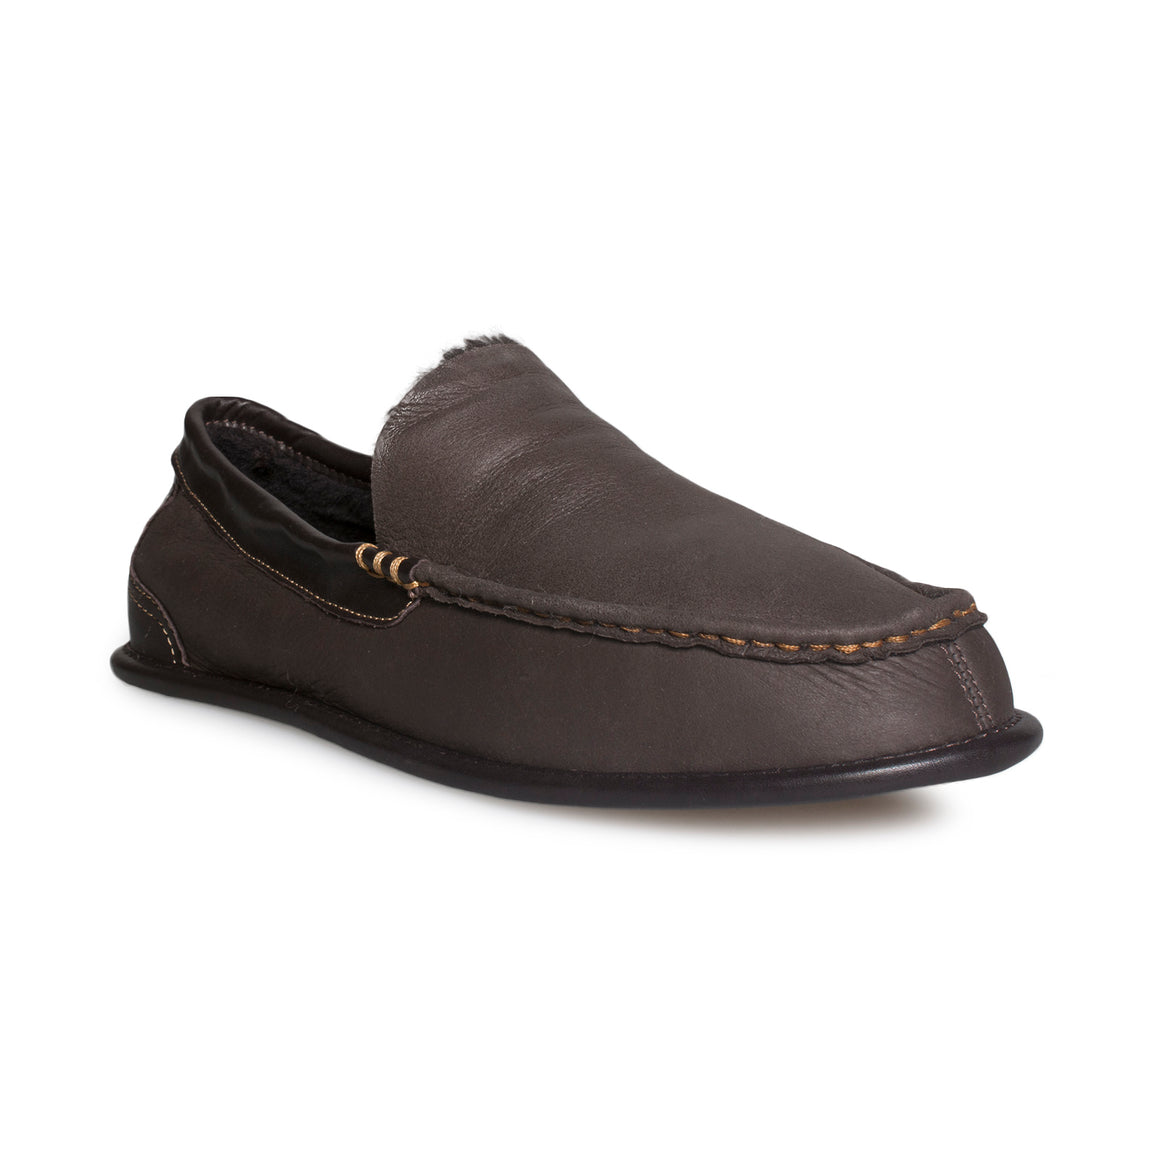 UGG Lorne Chocolate Shoes - Men's